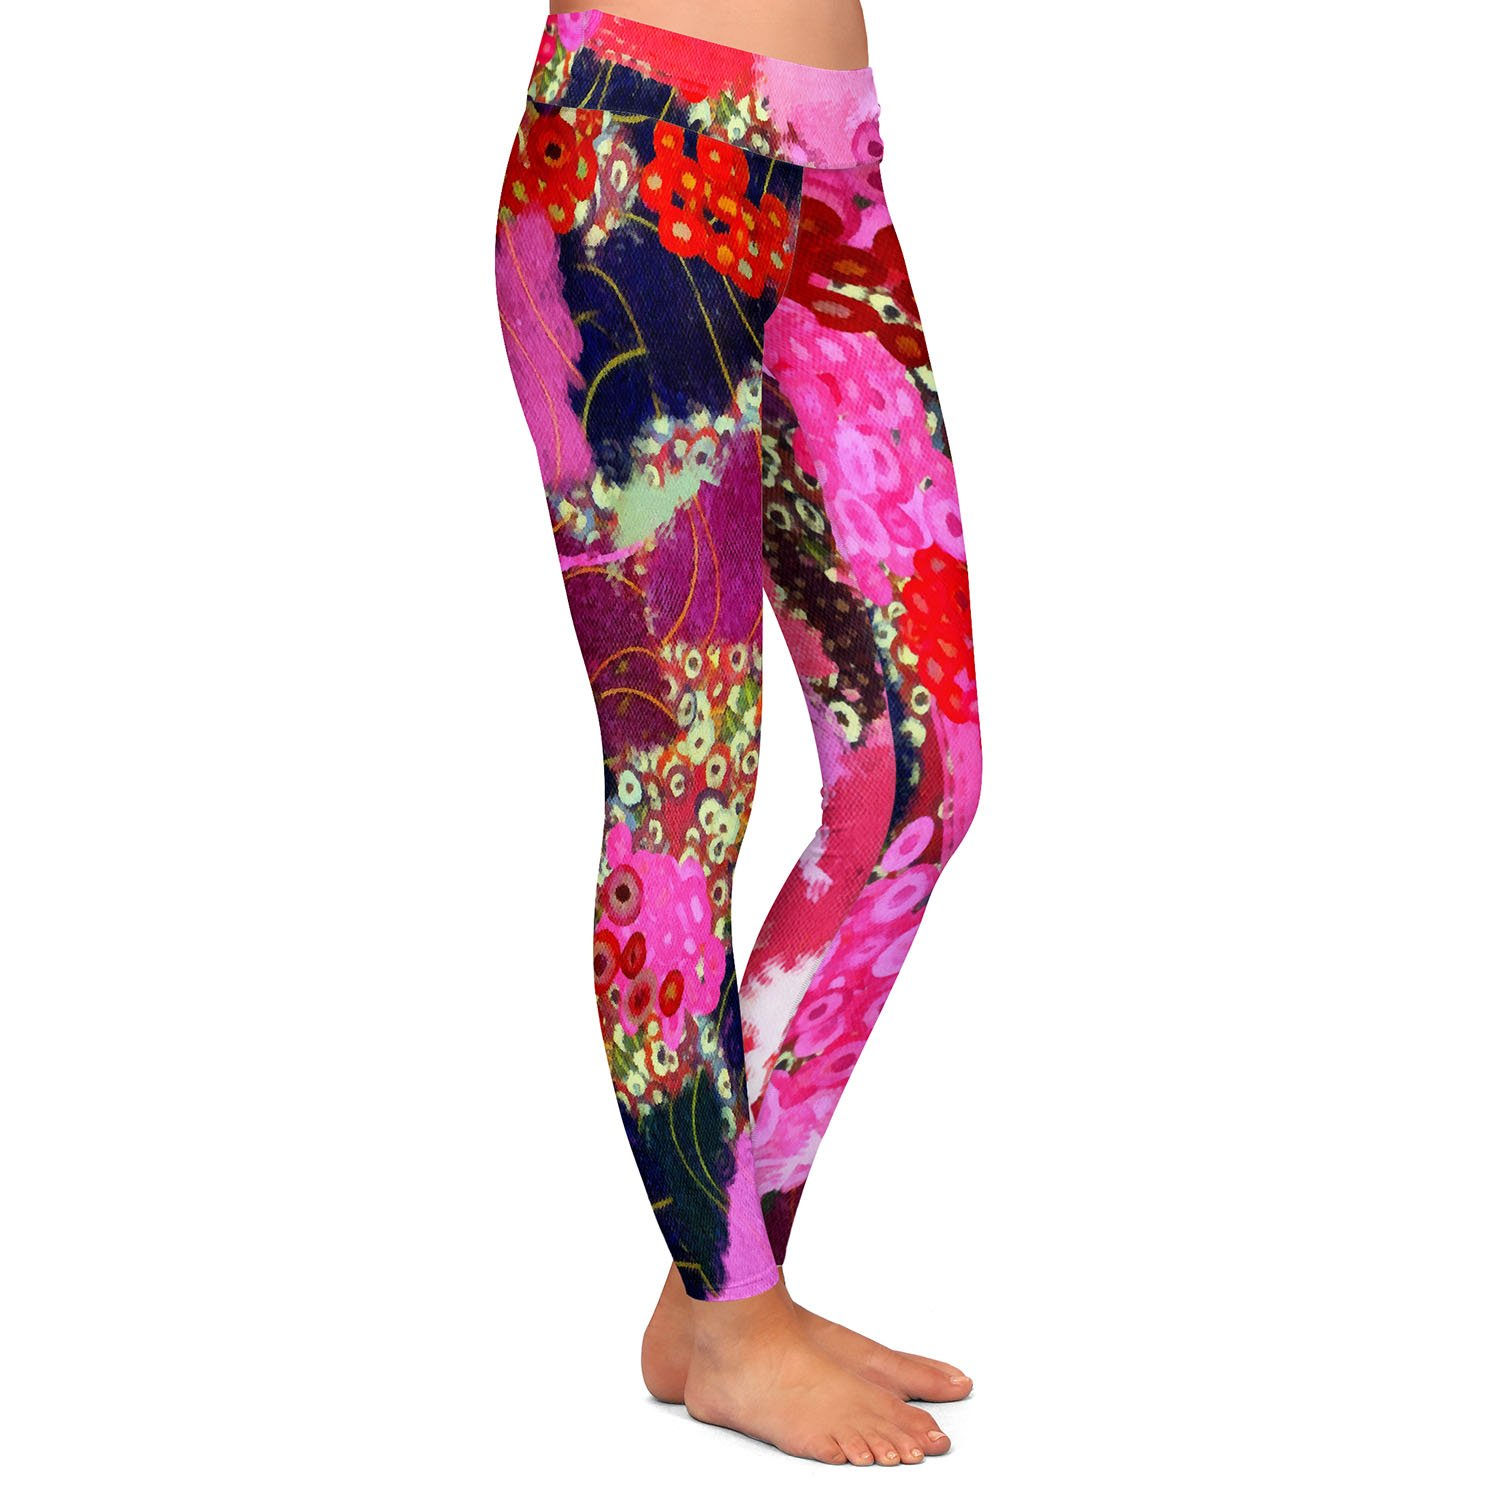 Athletic Yoga Leggings from DiaNoche Designs by Angelina Vick Estrogen 3